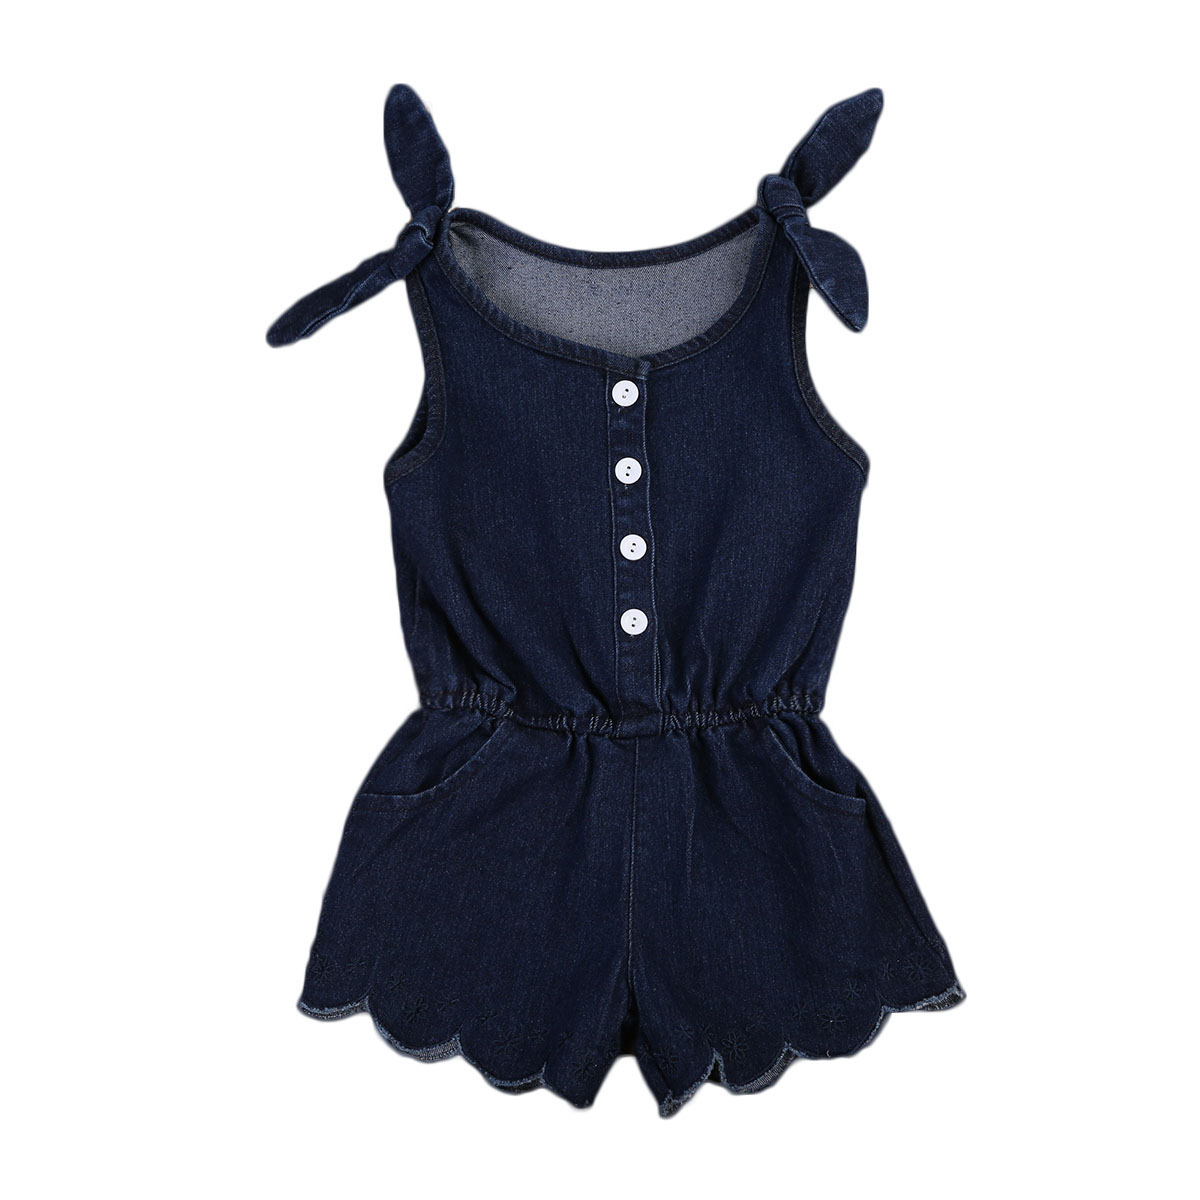 Newborn Infant Baby Girl Sleeveless Denim Romper Jumpsuit Toddler One-Pieces Outfits Summer Sunsuit Clothes 2017 new adorable summer games infant newborn baby boy girl romper jumpsuit outfits clothes clothing